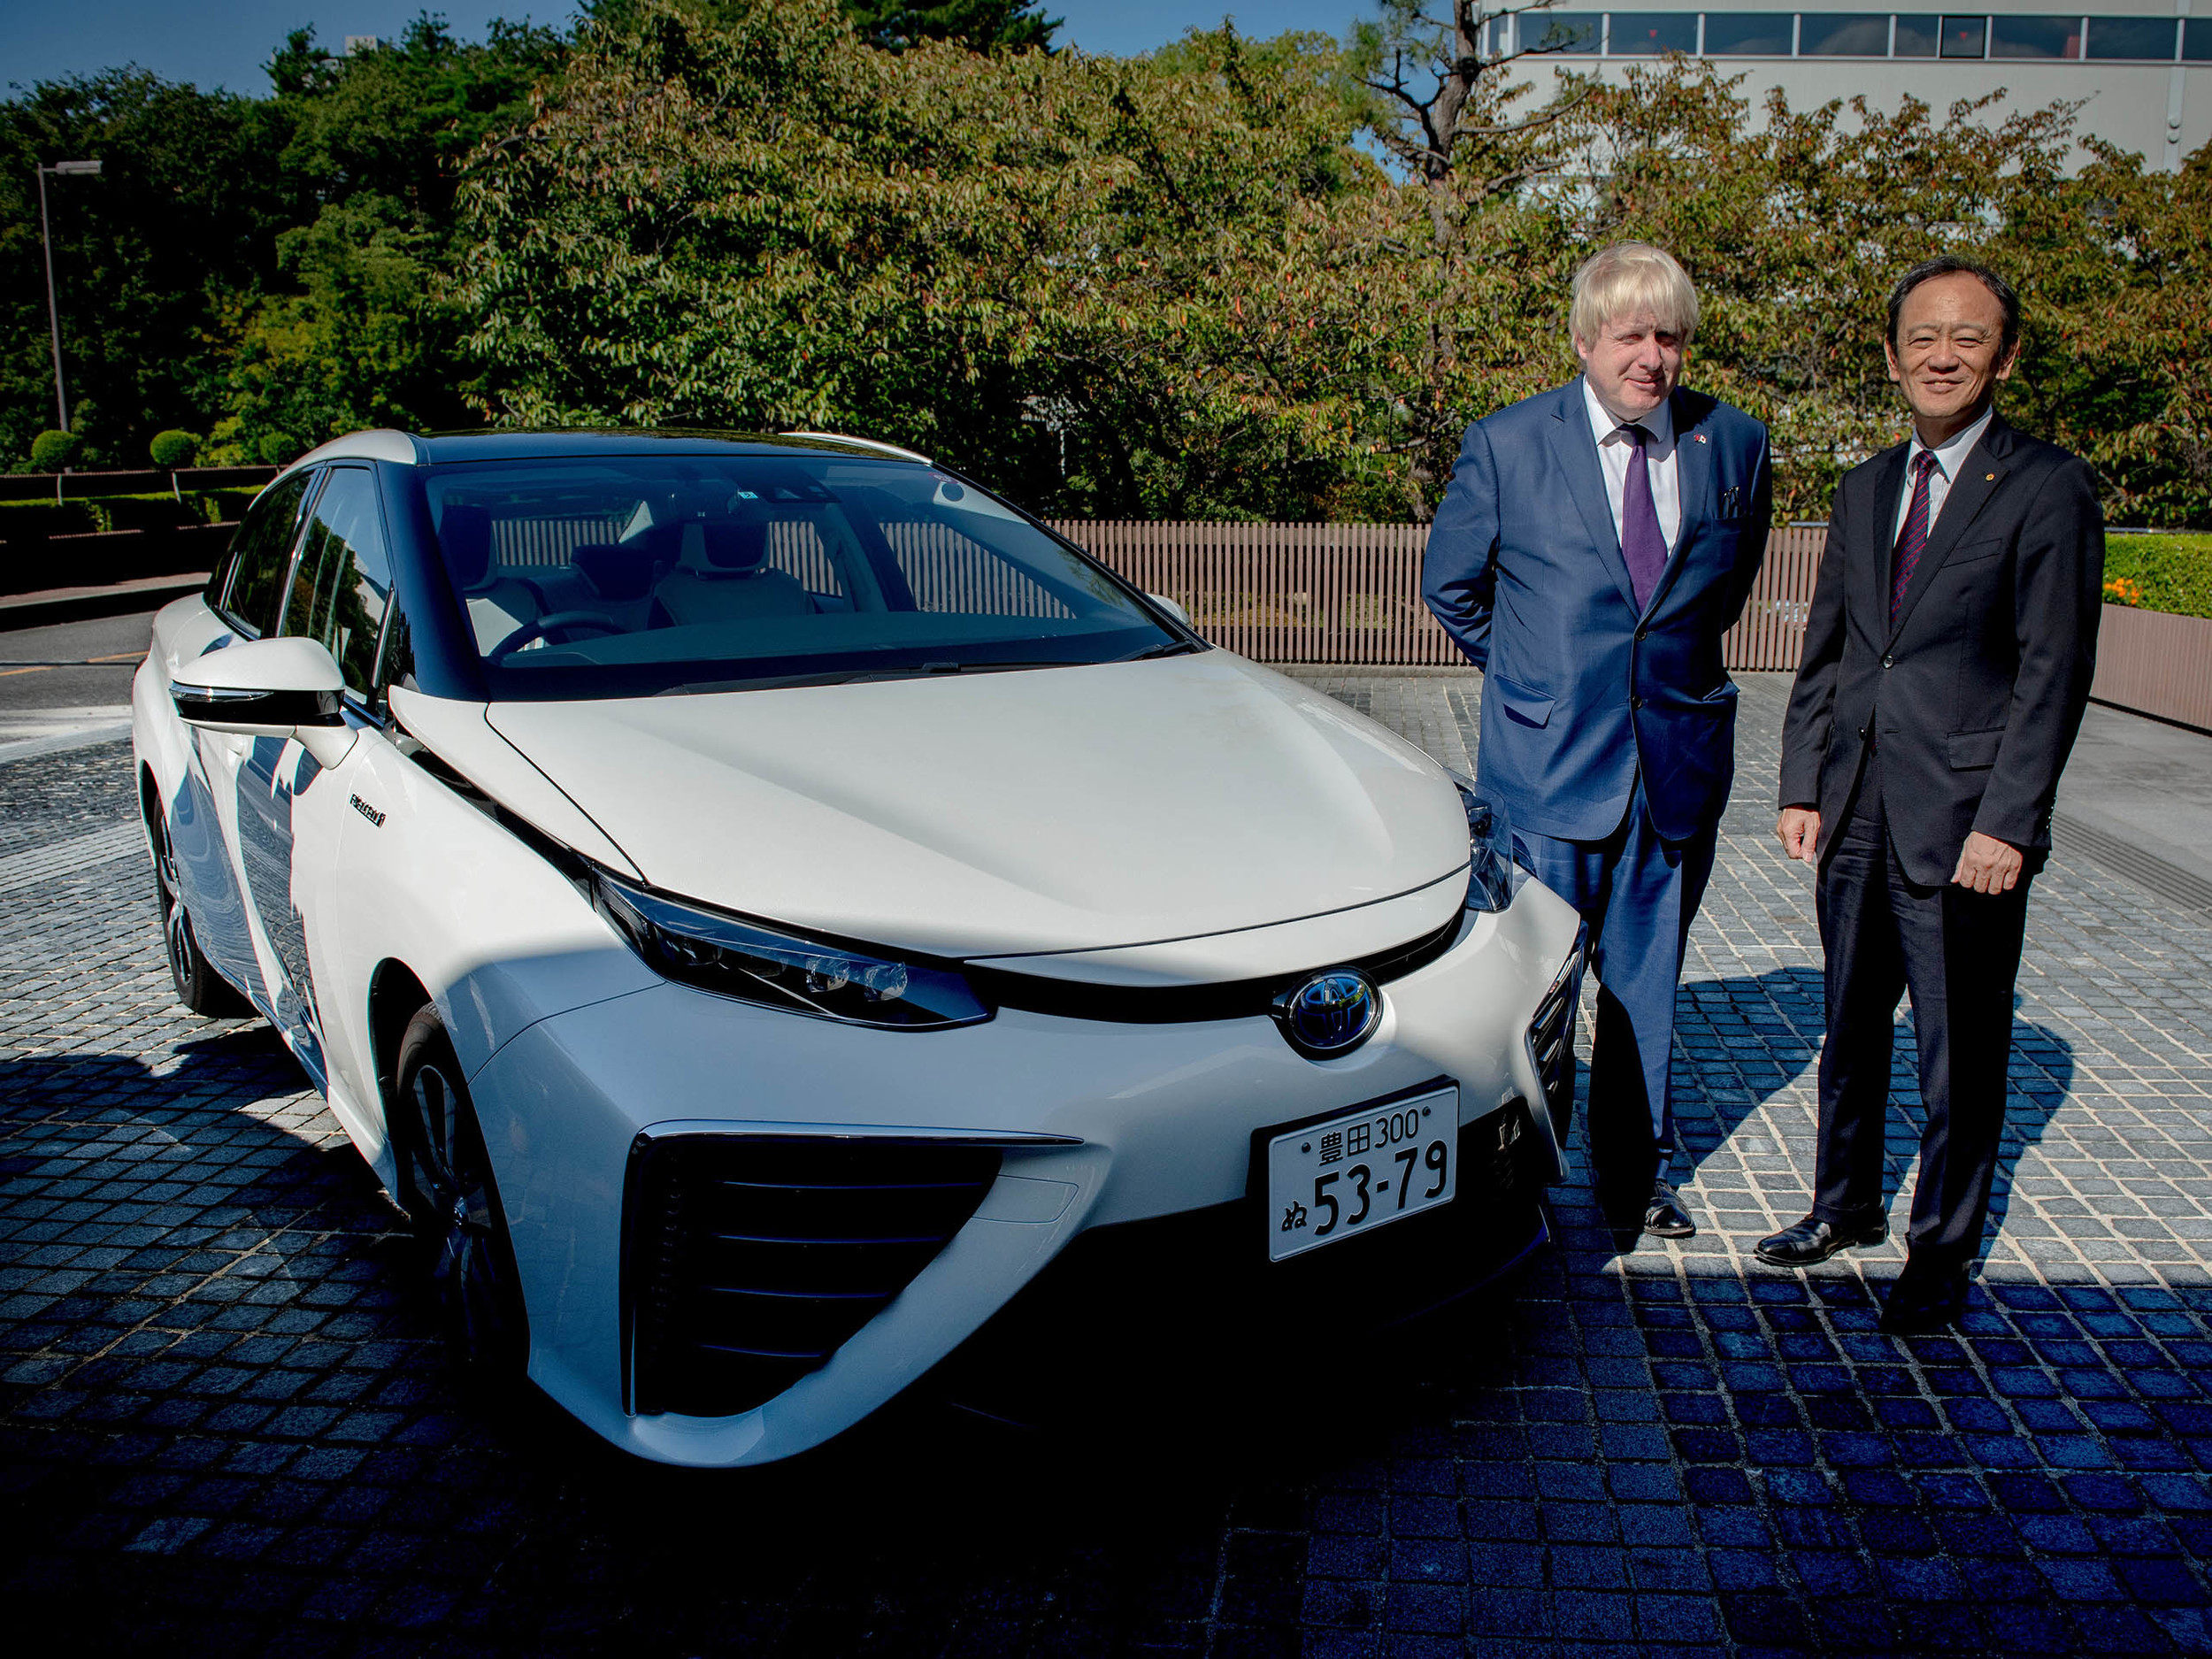 Boris Johnson confirms hydrogen Toyota for TfL